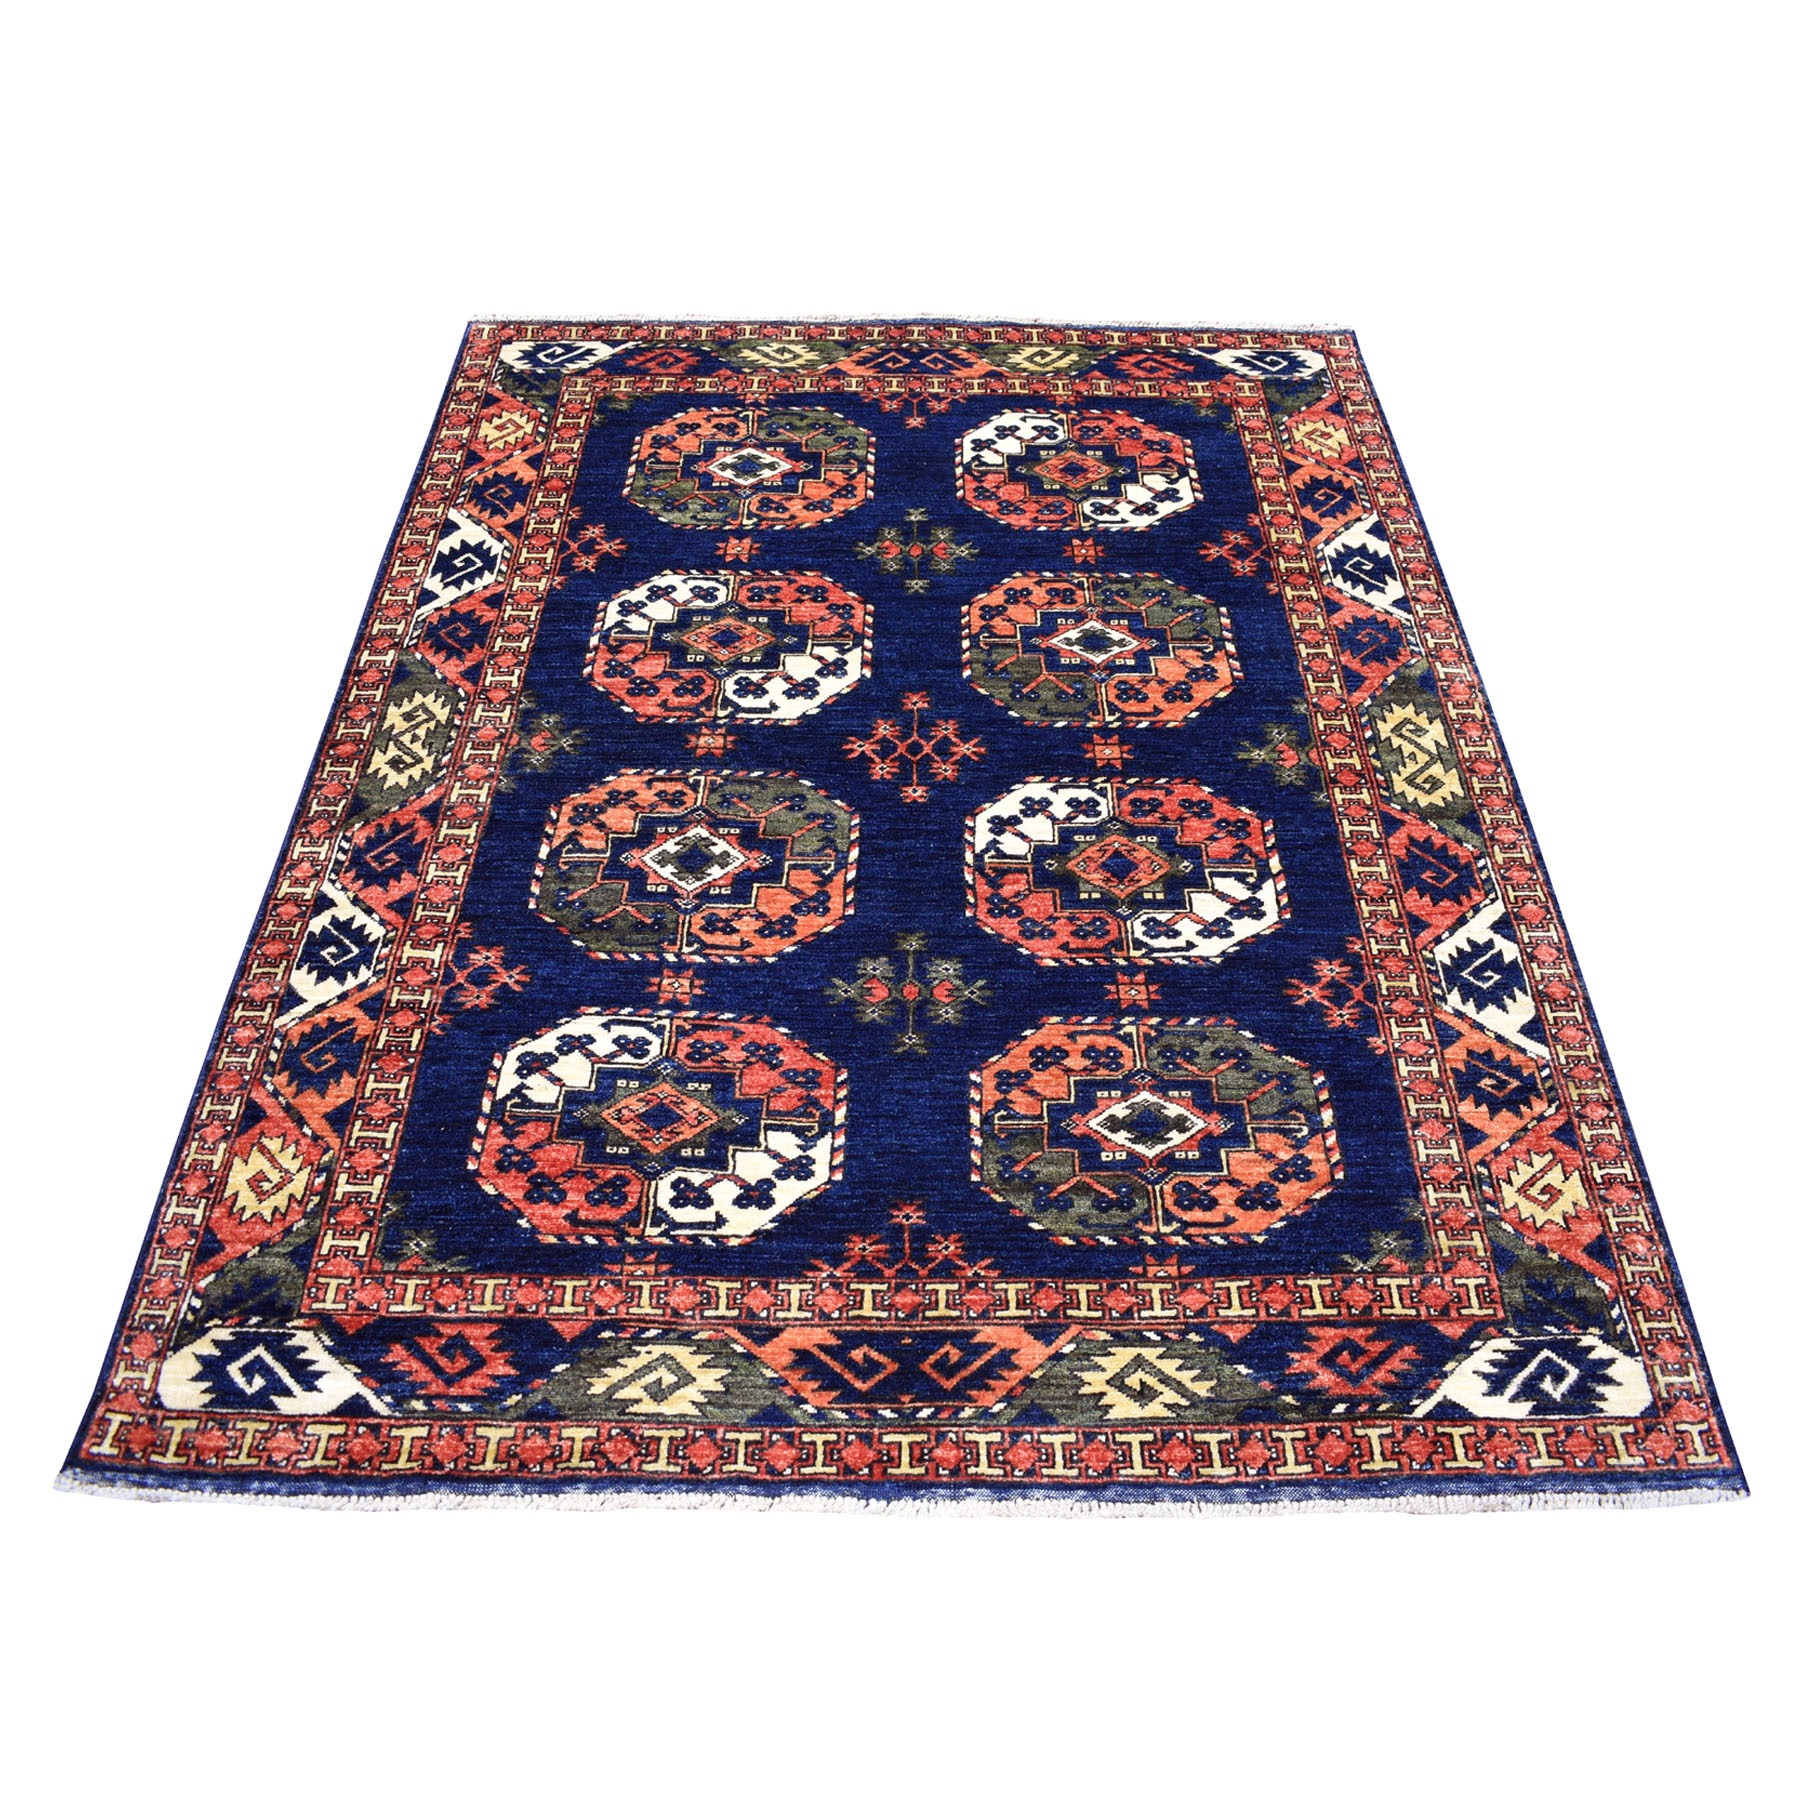 "5'X6'6"" Blue Elephant Feet Design Afghan Ersari Hand Knotted Pure Wool Oriental Rug moaecce7"